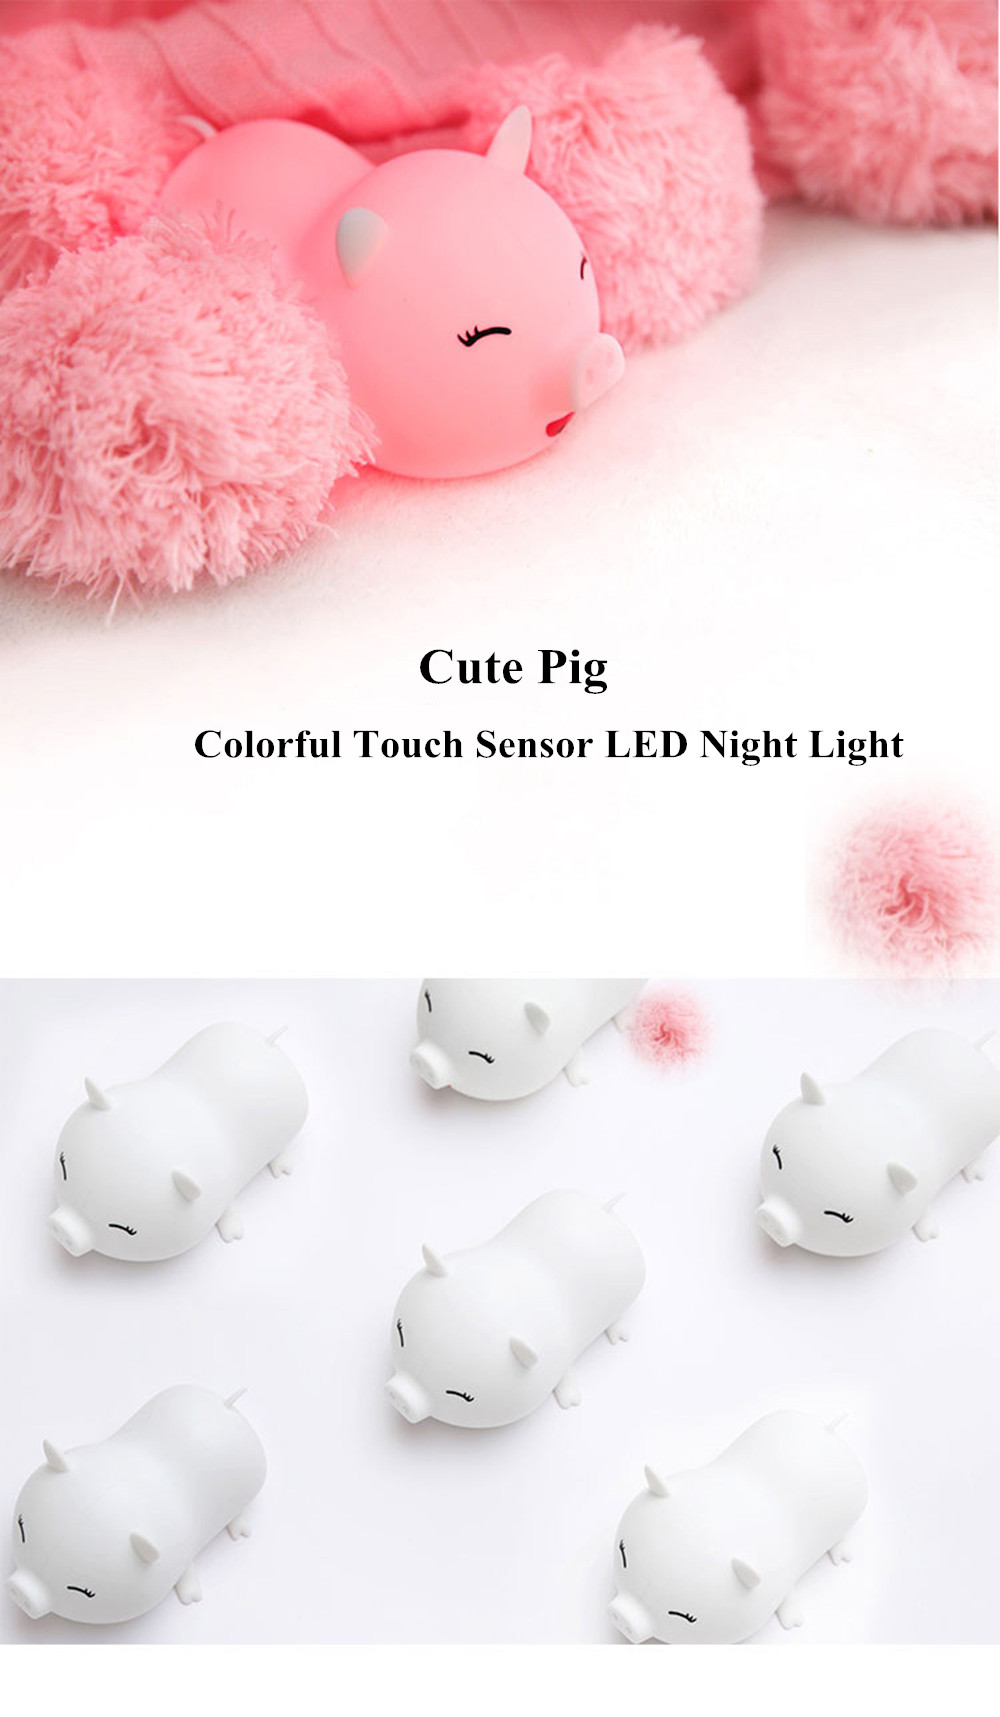 SuperNight Cute Pig LED Night Light Rechargeable Colorful Silicone Animal Touch Sensor Table Lamp Baby Kids Bedroom Bedside Lamp (22)